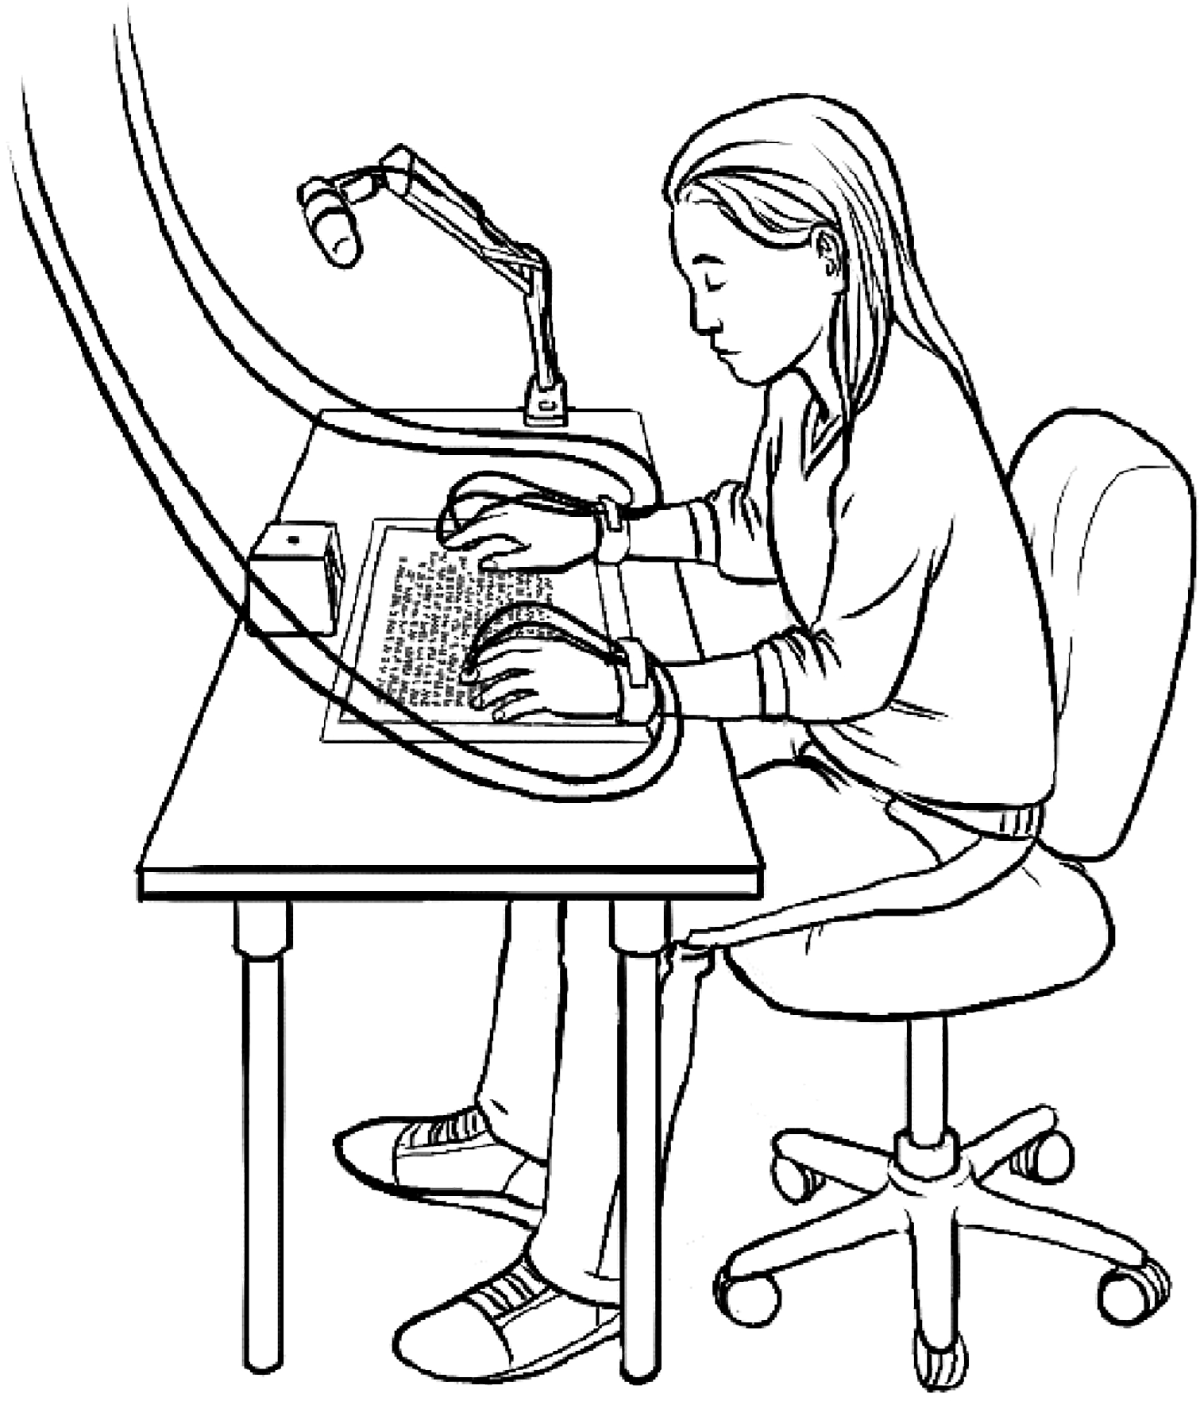 Pen and Ink graphic of person sitting in an office chair and reading braille with haptic sensors on their hands.